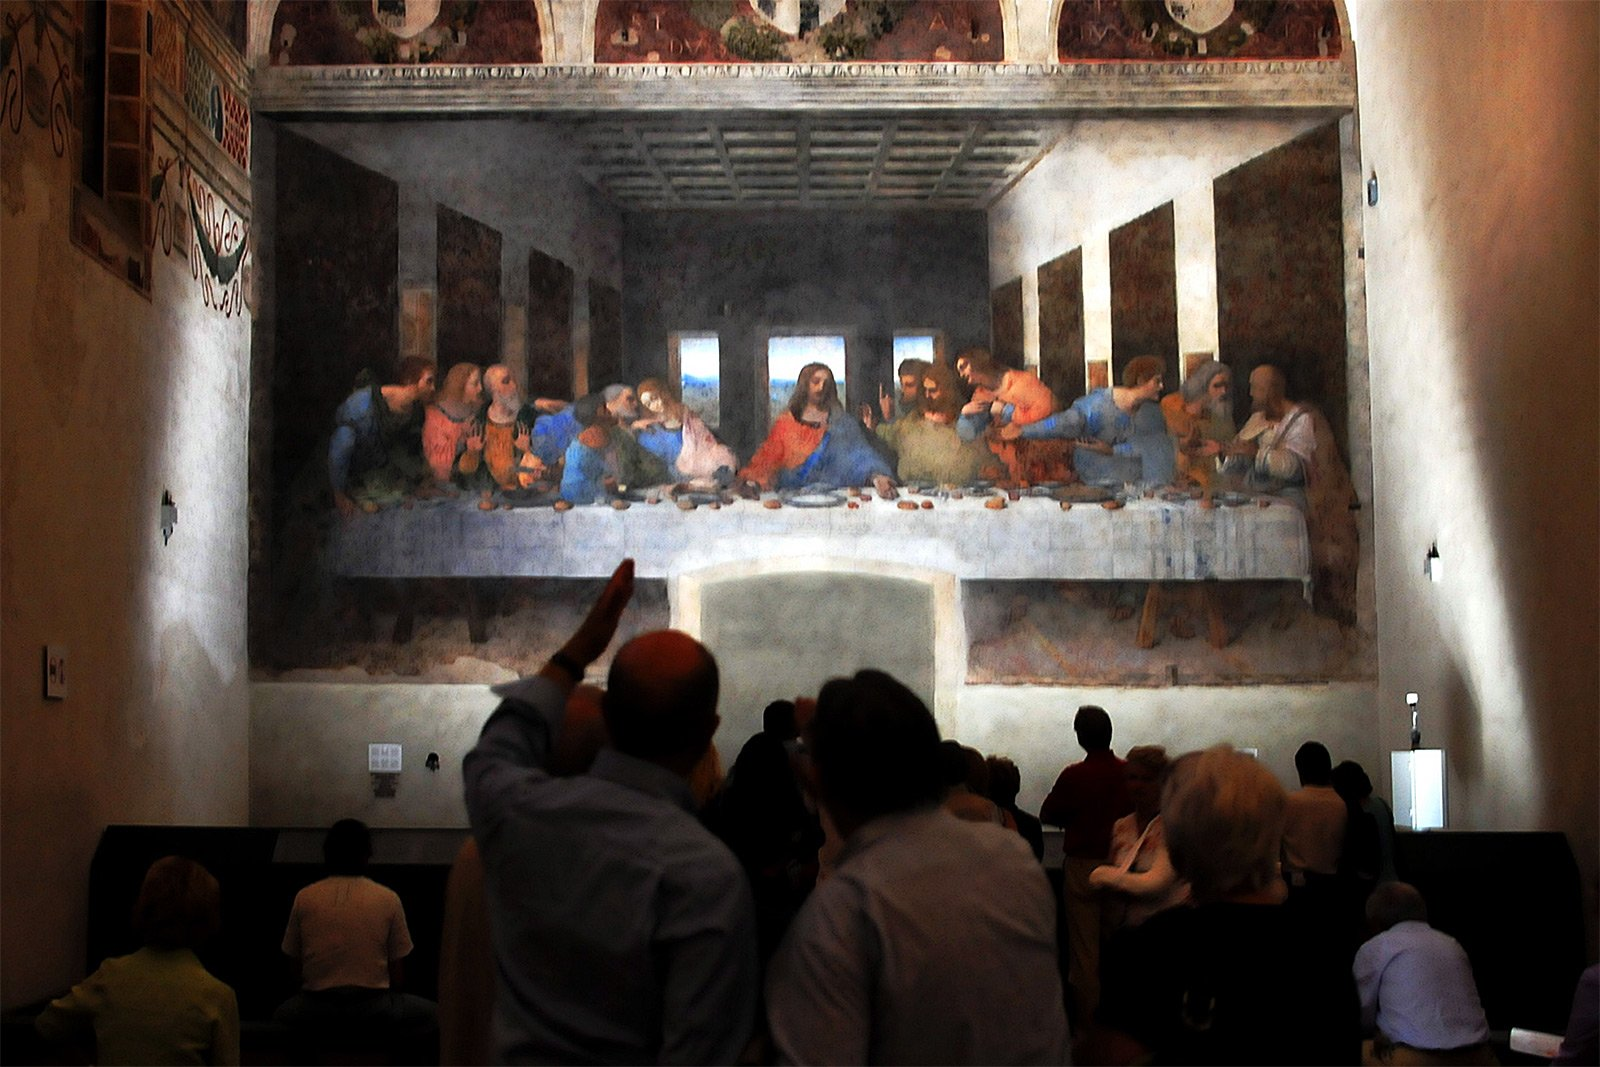 "How to see the famous fresco by Leonardo da Vinci ""Last Supper"" in Milan"